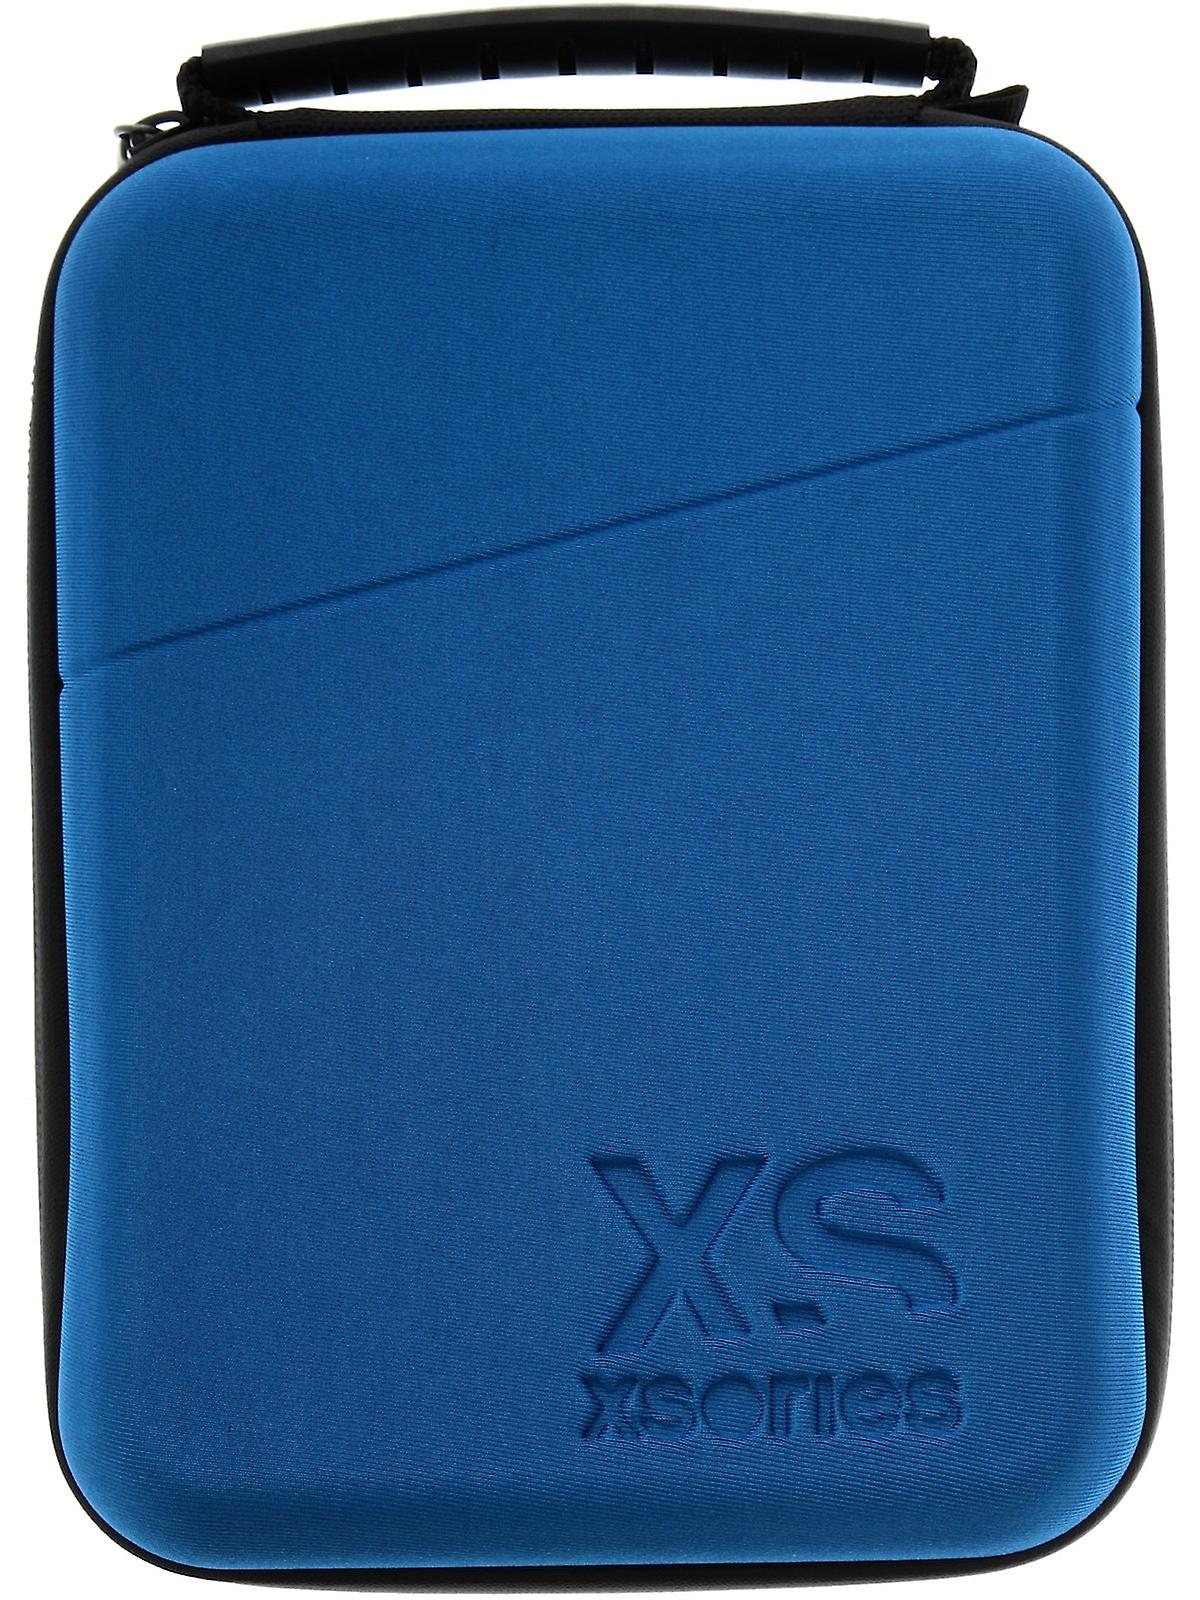 X-Sories Blue Capxule Small Carry Case